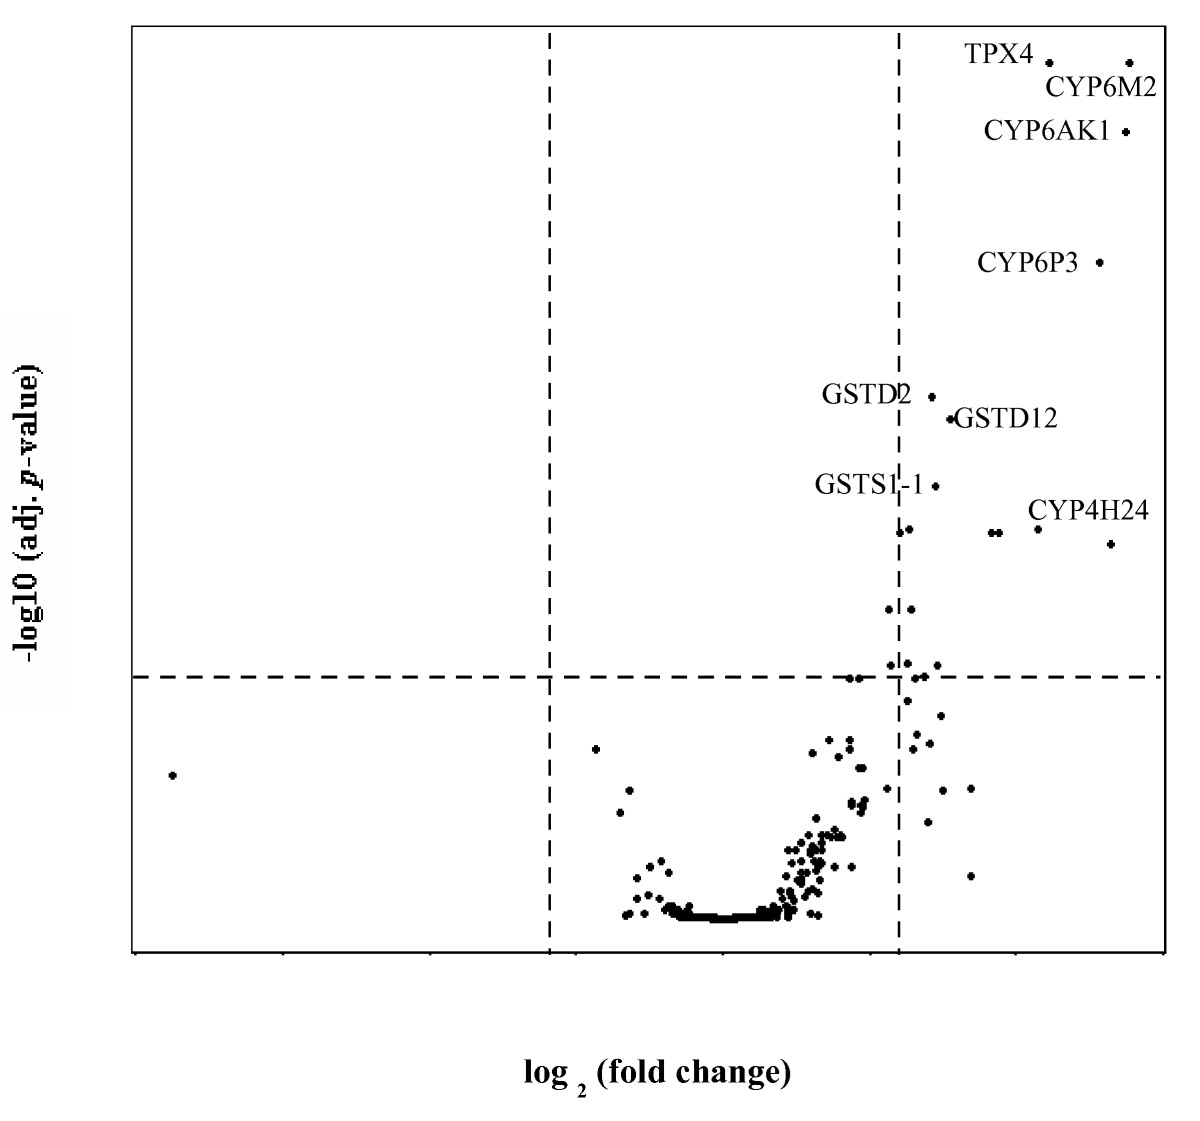 https://static-content.springer.com/image/art%3A10.1186%2F1756-3305-5-113/MediaObjects/13071_2012_Article_626_Fig2_HTML.jpg